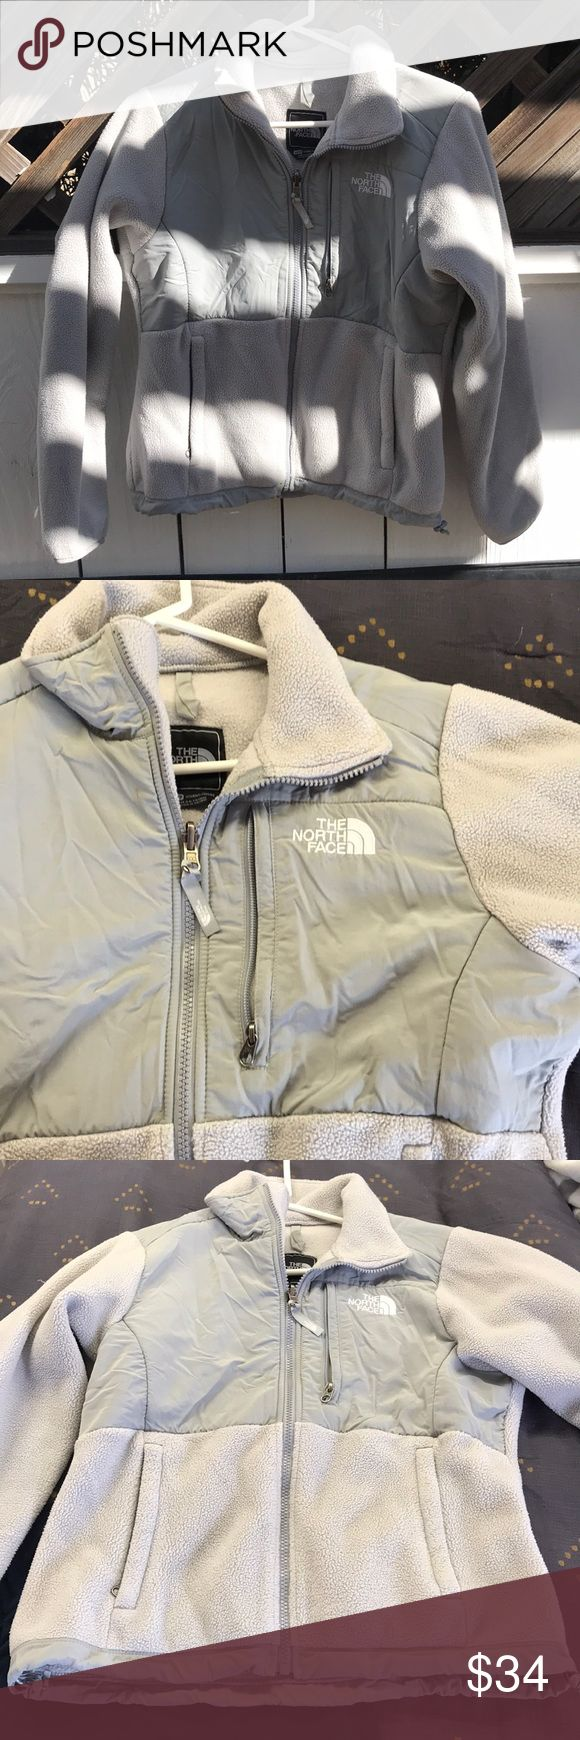 Gray woman's north face jacket Soft gray women's north face jacket North Face Jackets & Coats